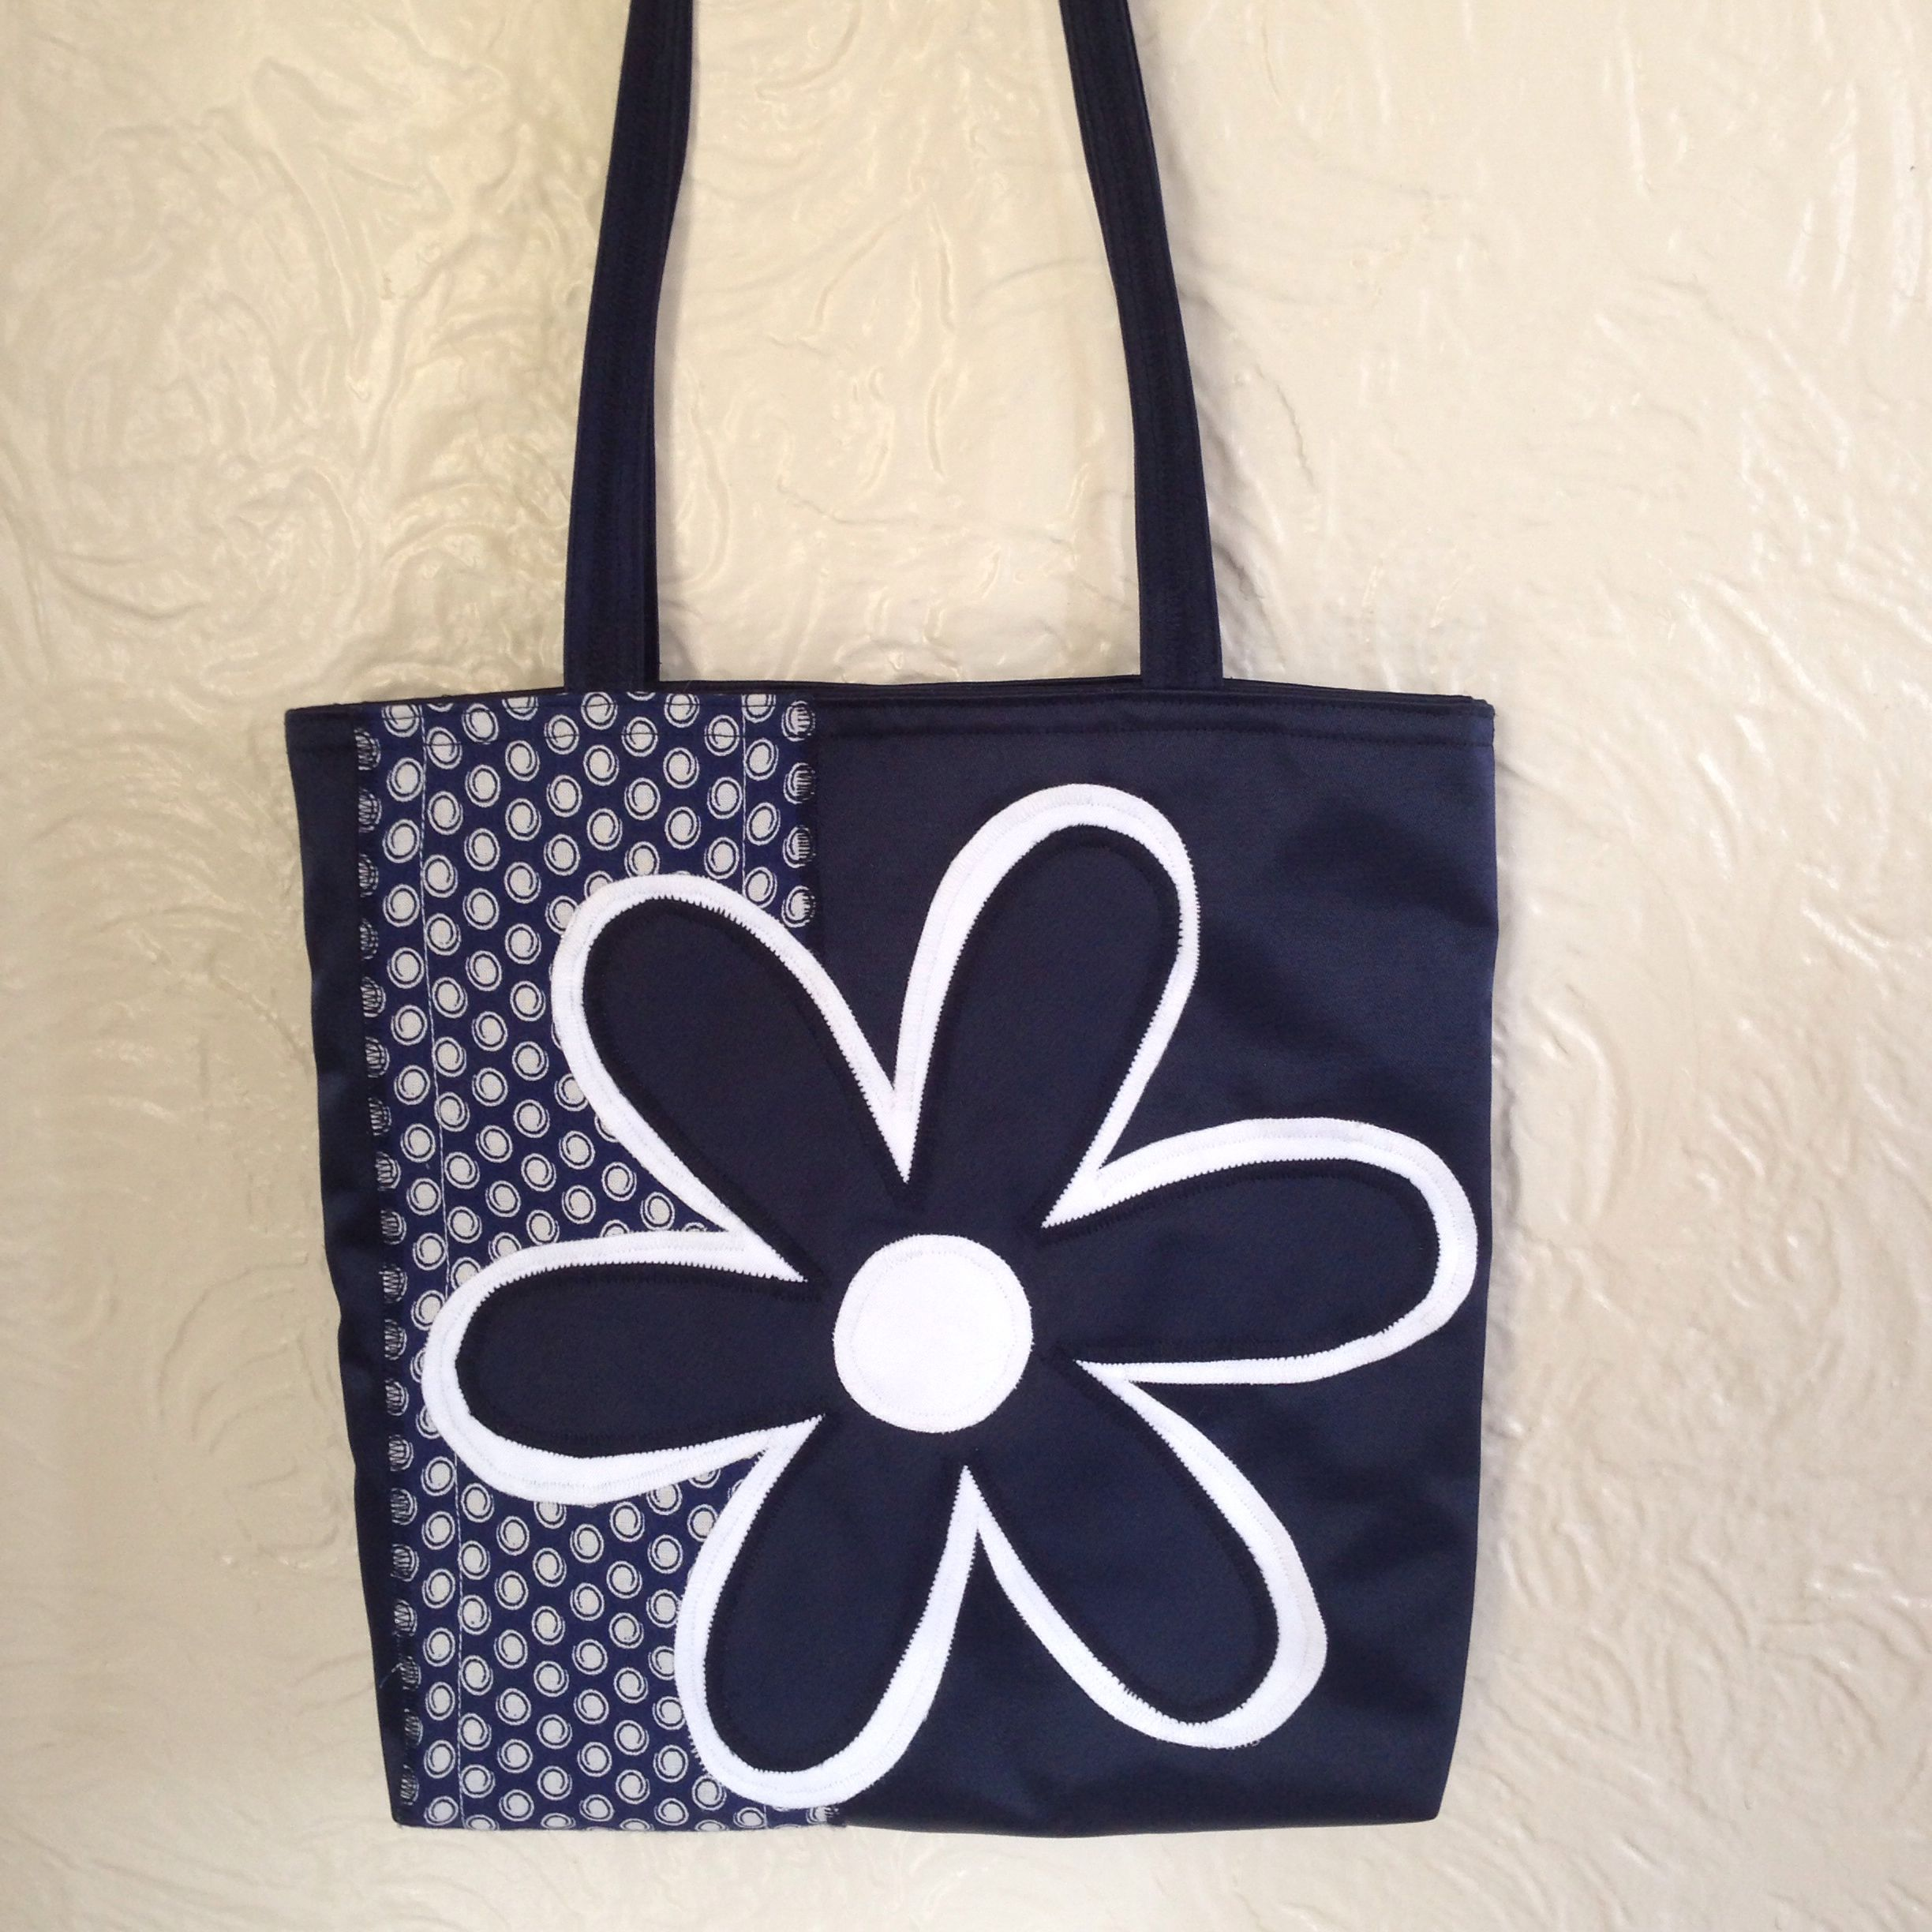 On Sale At Ruliartisans Tote Bag Made With Upcycled Material